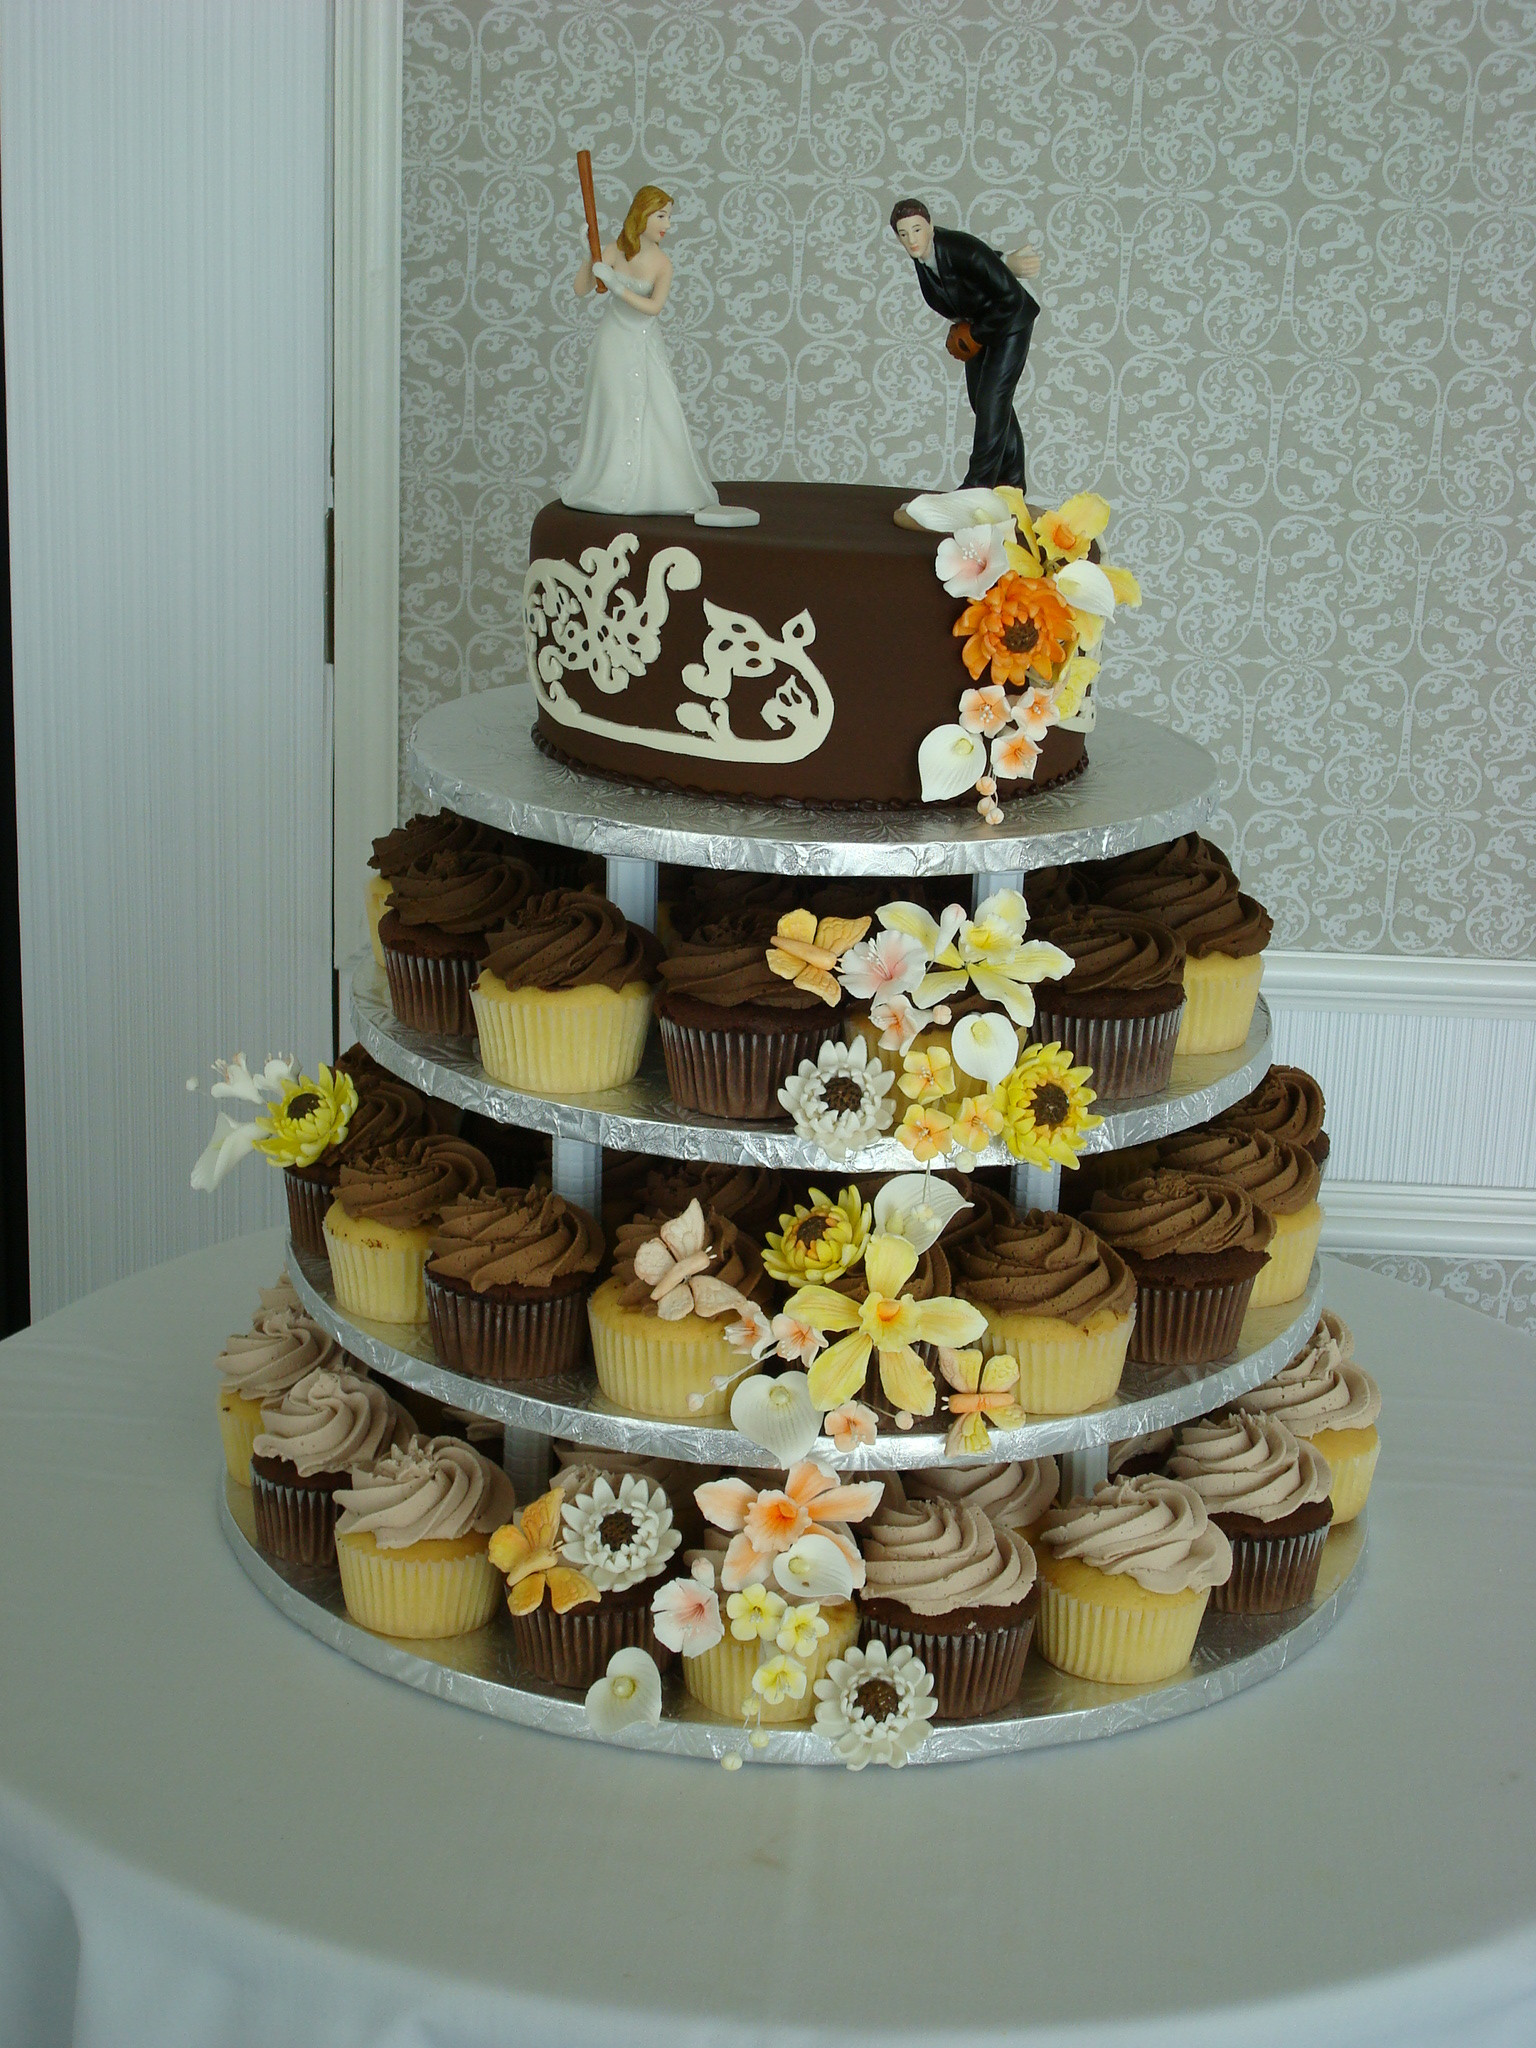 Wedding Cakes And Cupcakes  Cupcake Wedding Cakes